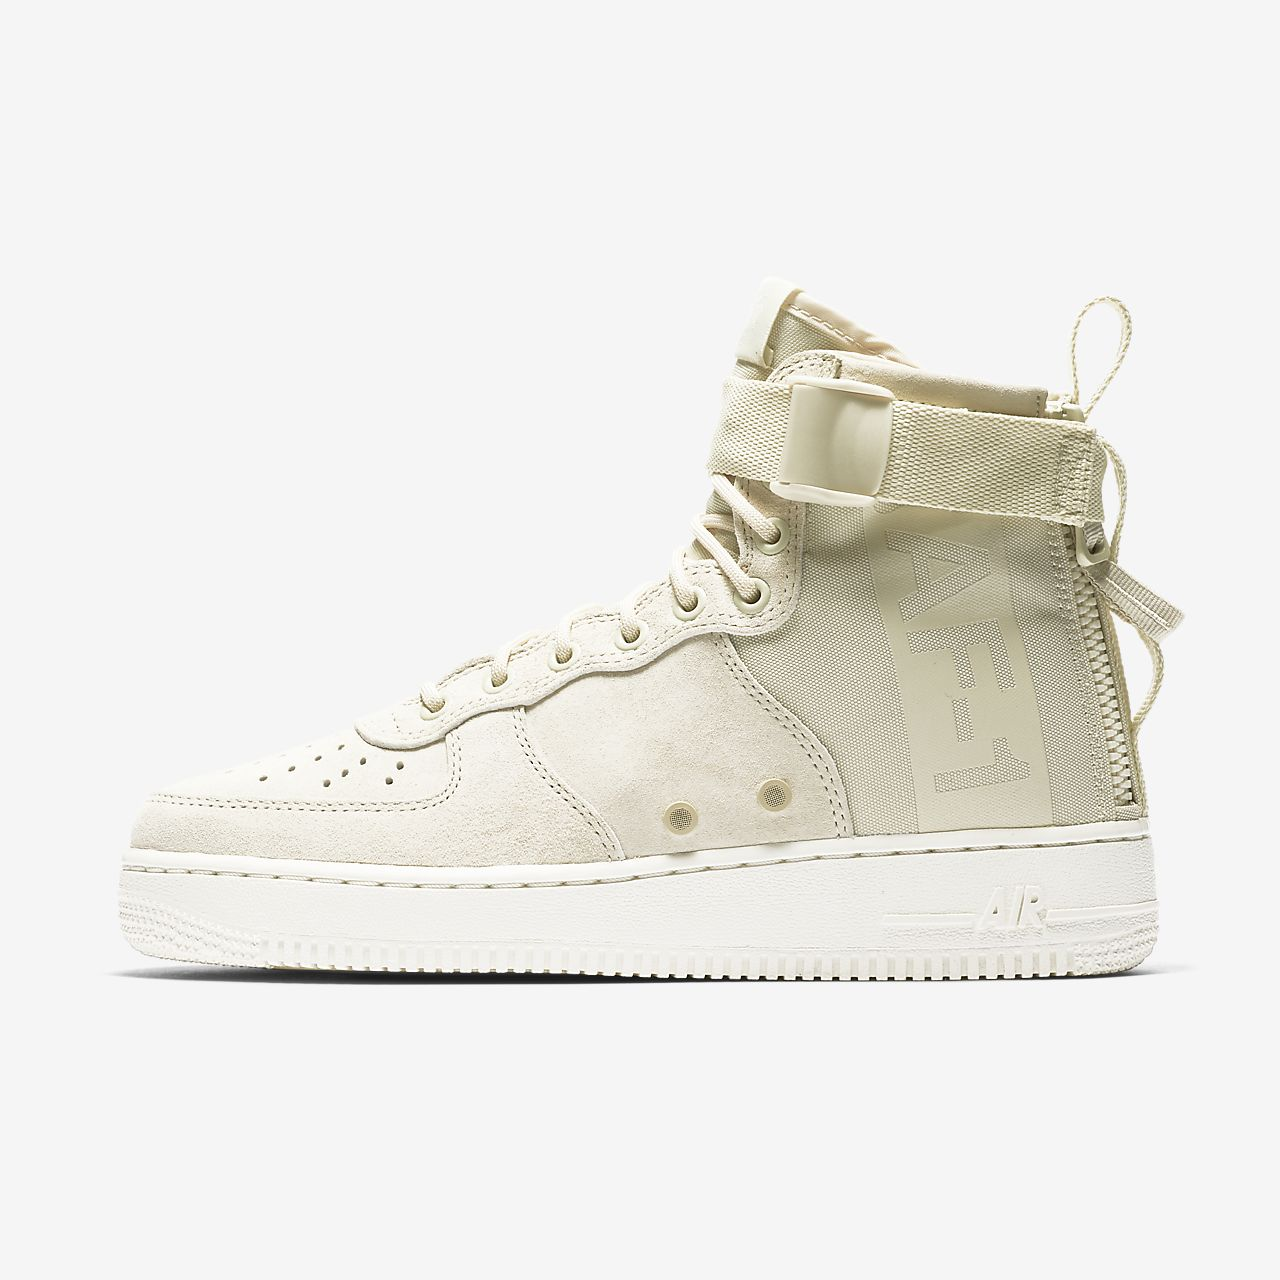 nike sf air force 1 mid men's shoe white nz